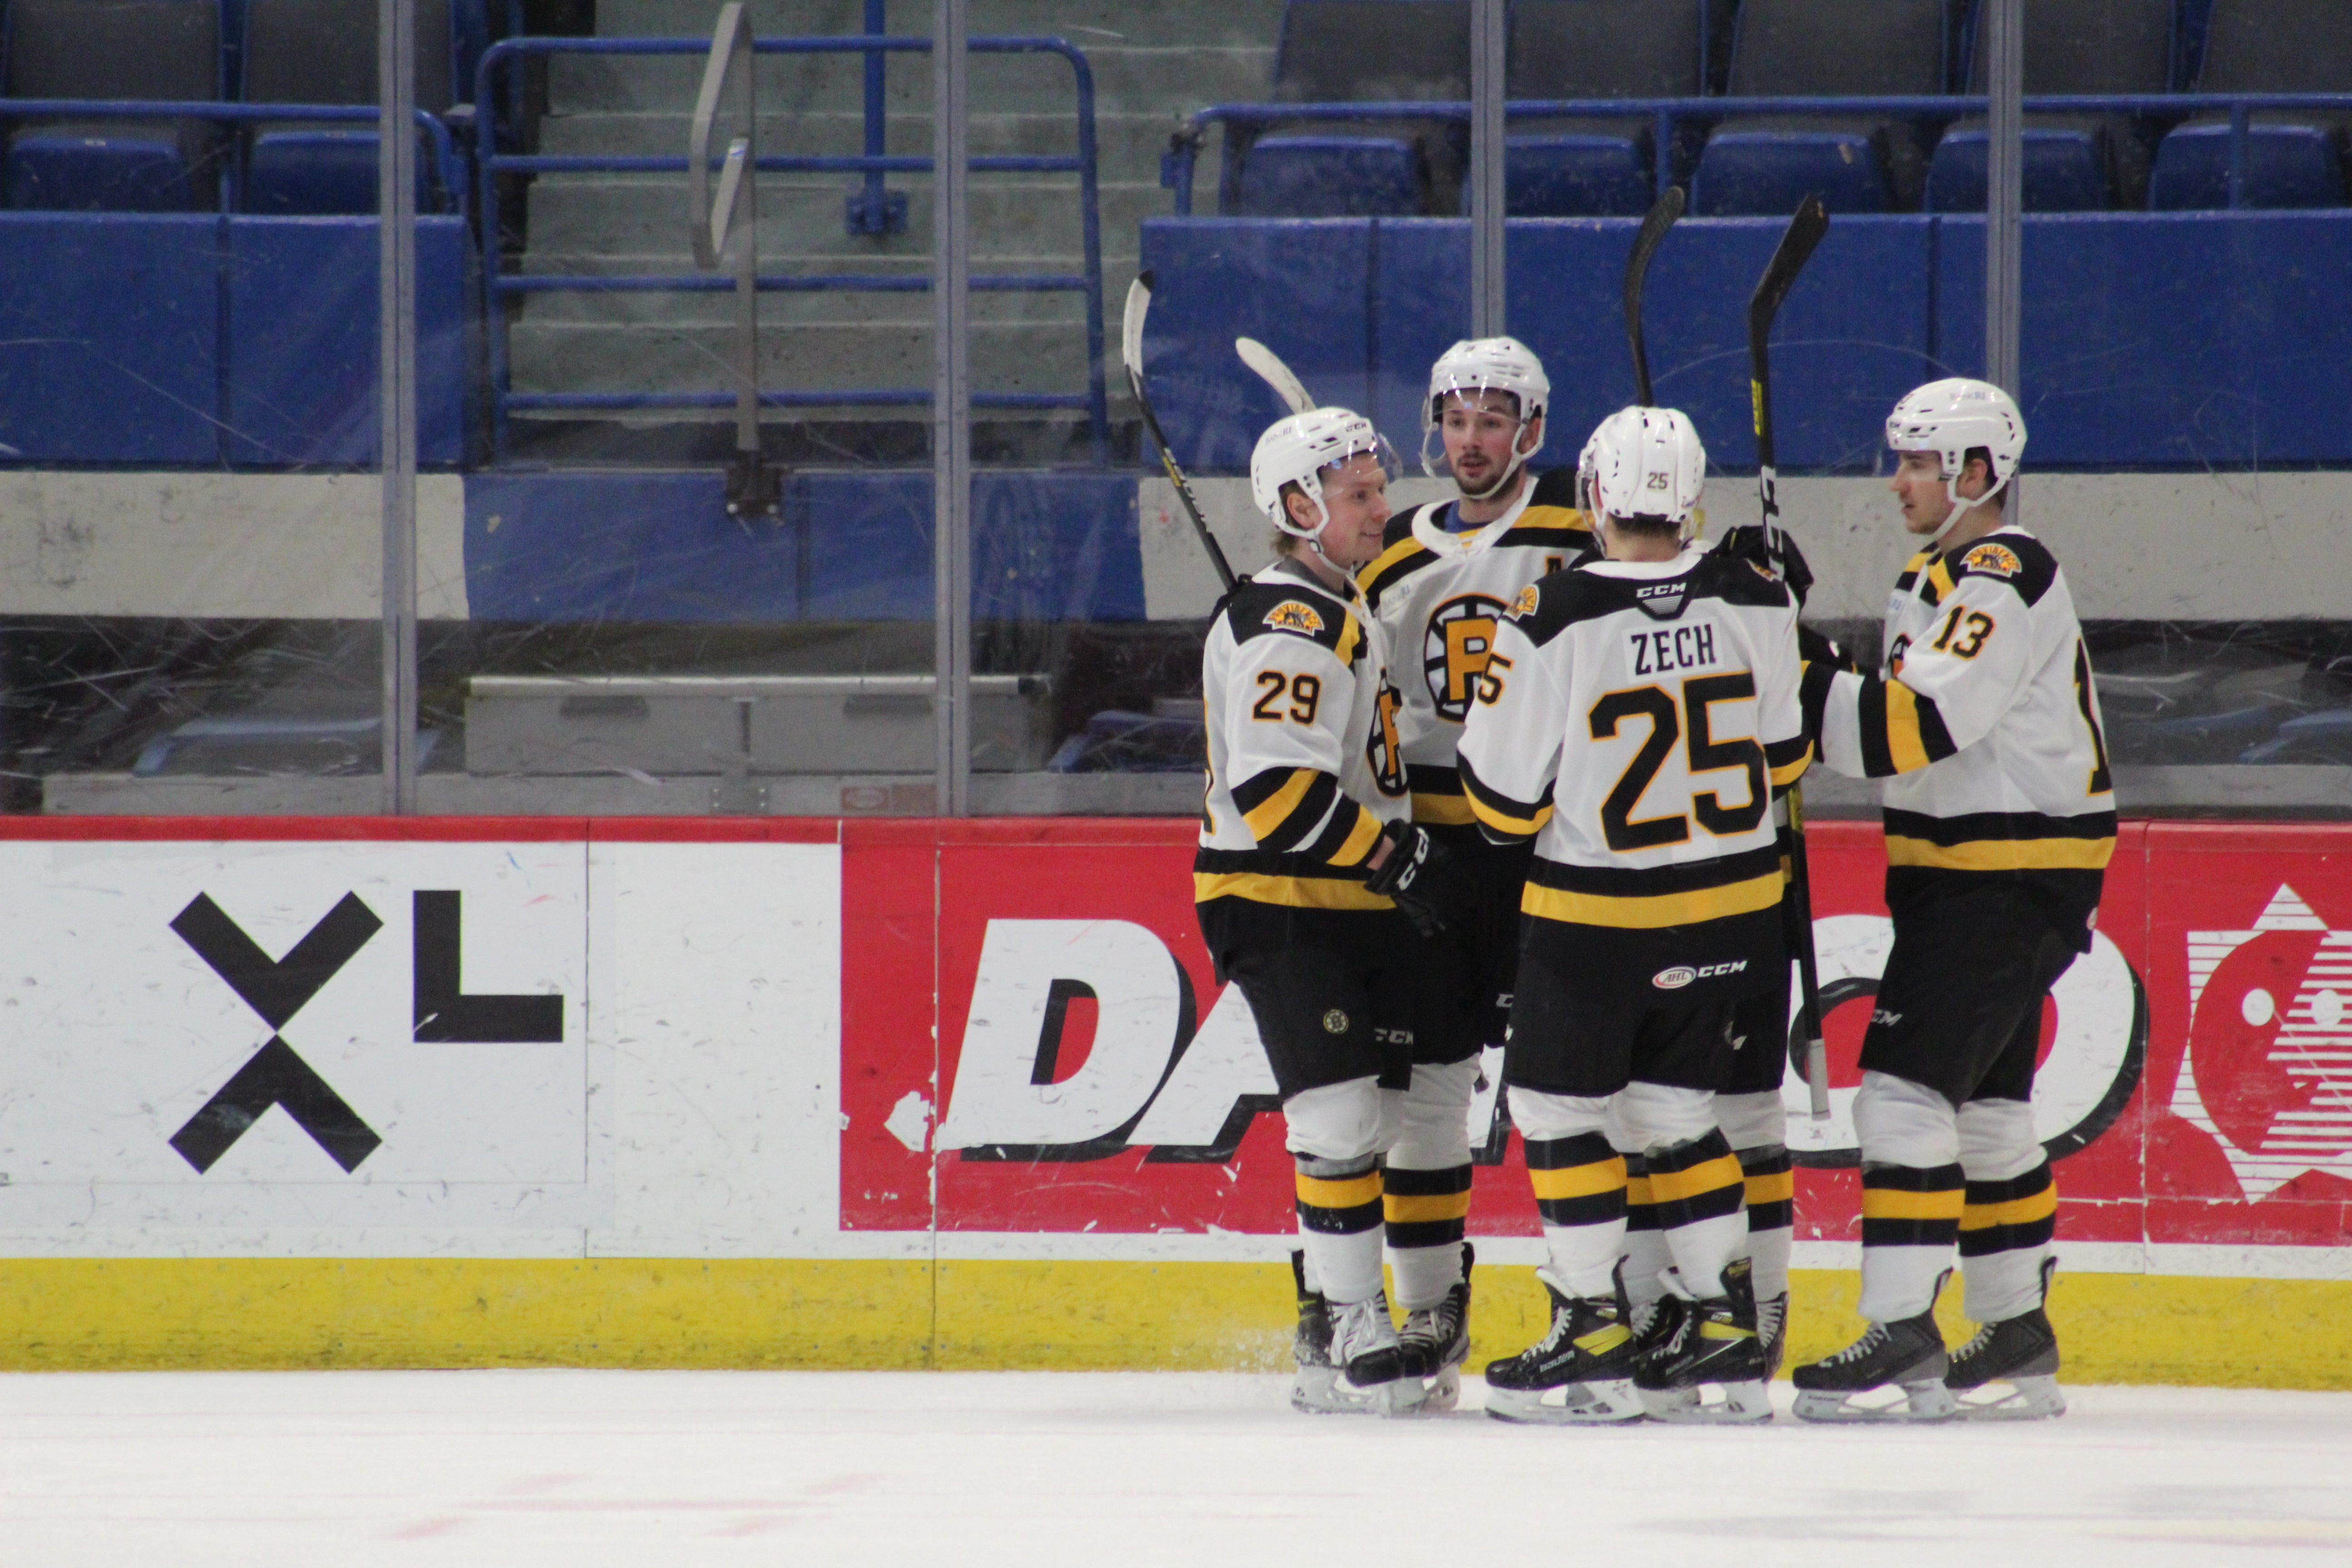 ASSELIN'S HAT TRICK PROPELS P-BRUINS TO 4-2 WIN OVER HARTFORD WOLF PACK